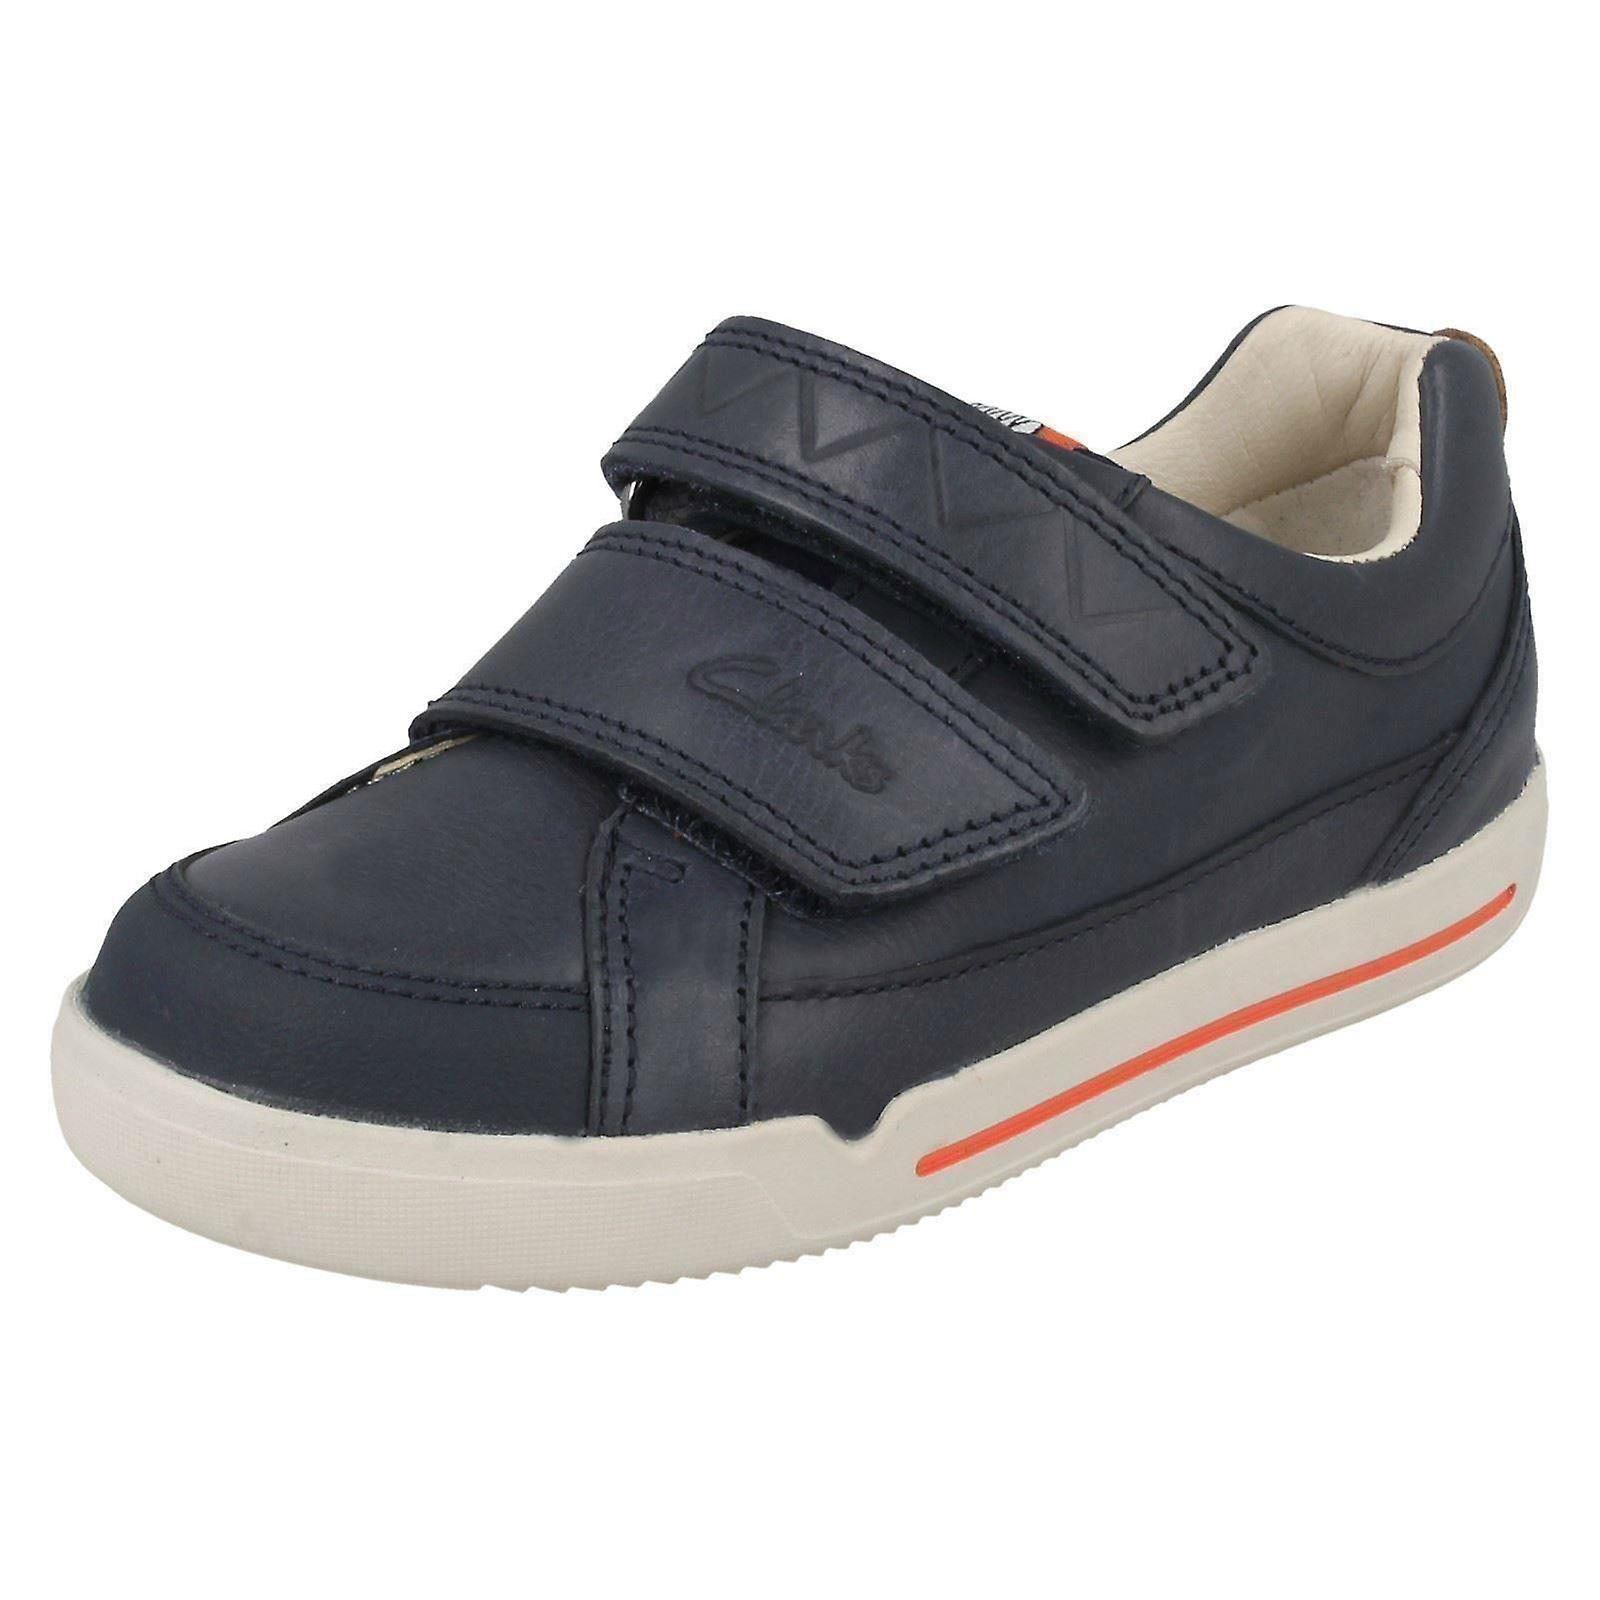 Garçons Clarks Double sangle Casual chaussures Lil Folk Toby